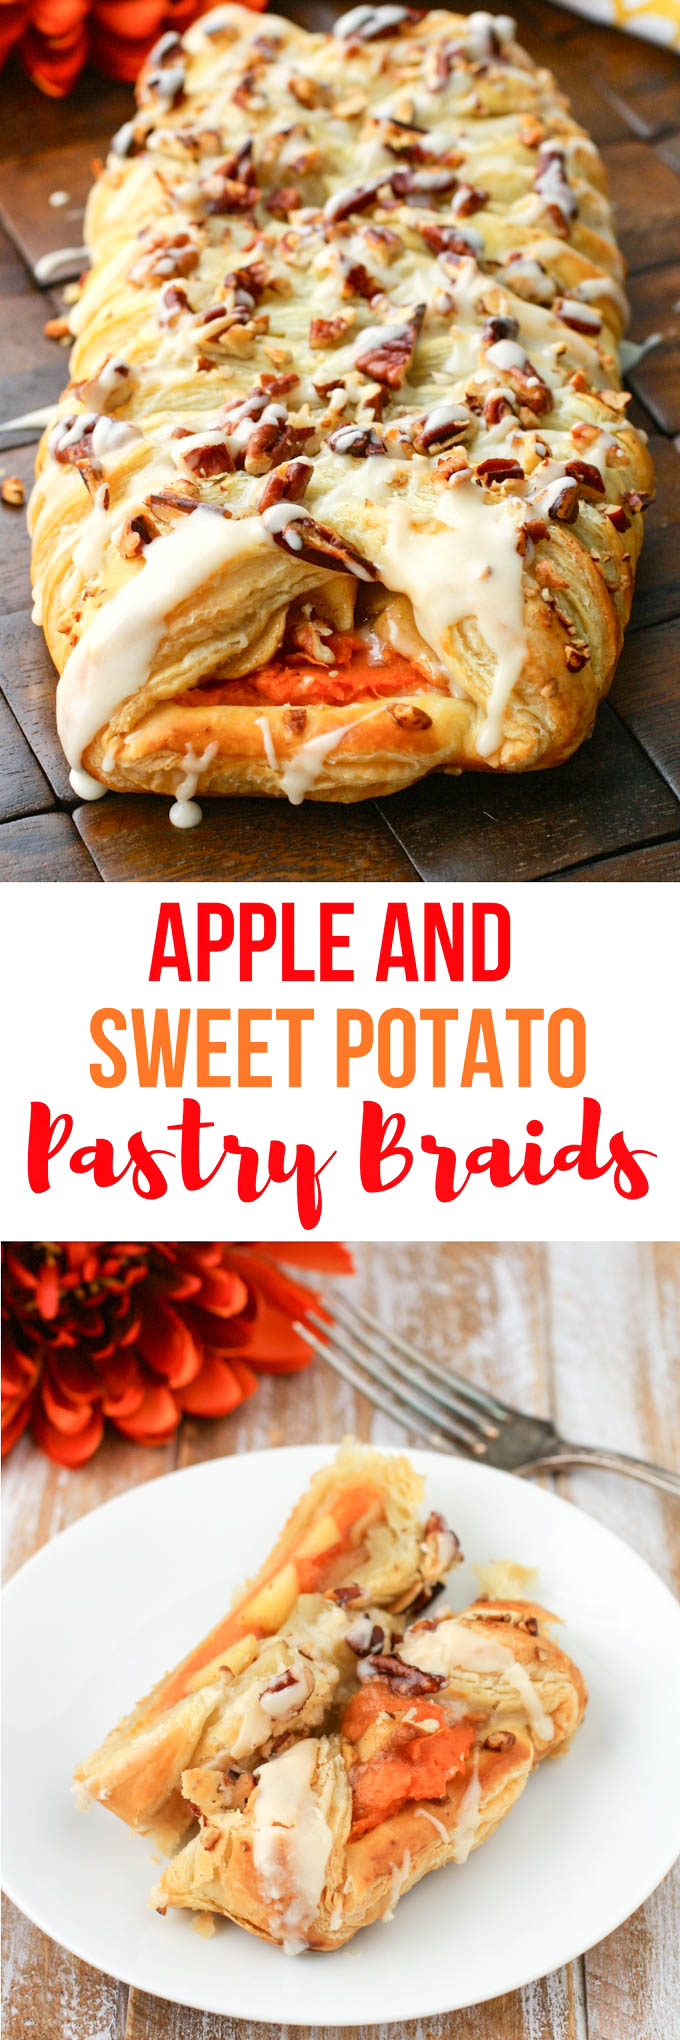 Apple and Sweet Potato Pastry Braids are a pretty and seasonal dessert you'll love. These pastries are fabulous anytime this fall.